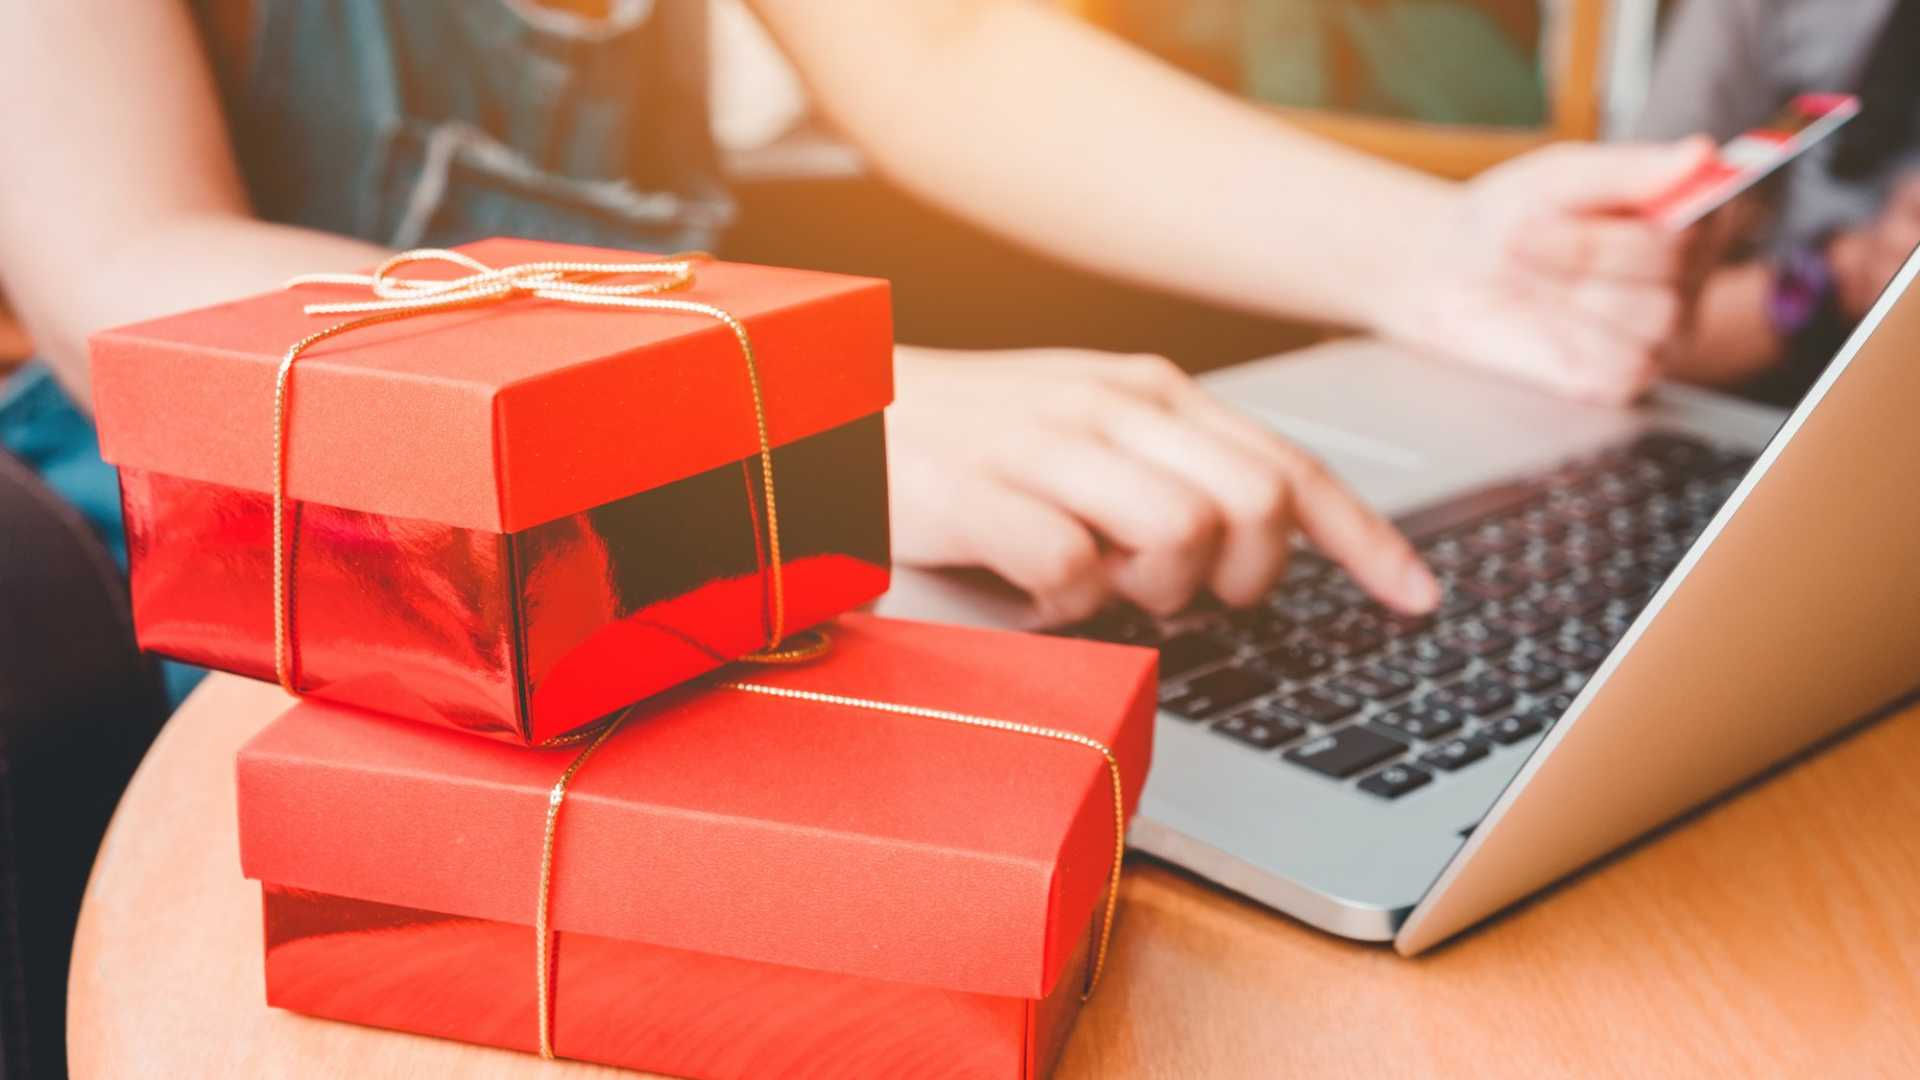 All E-Commerce Companies Should Follow These 6 Steps to Avoid Getting Hacked This Holiday Season